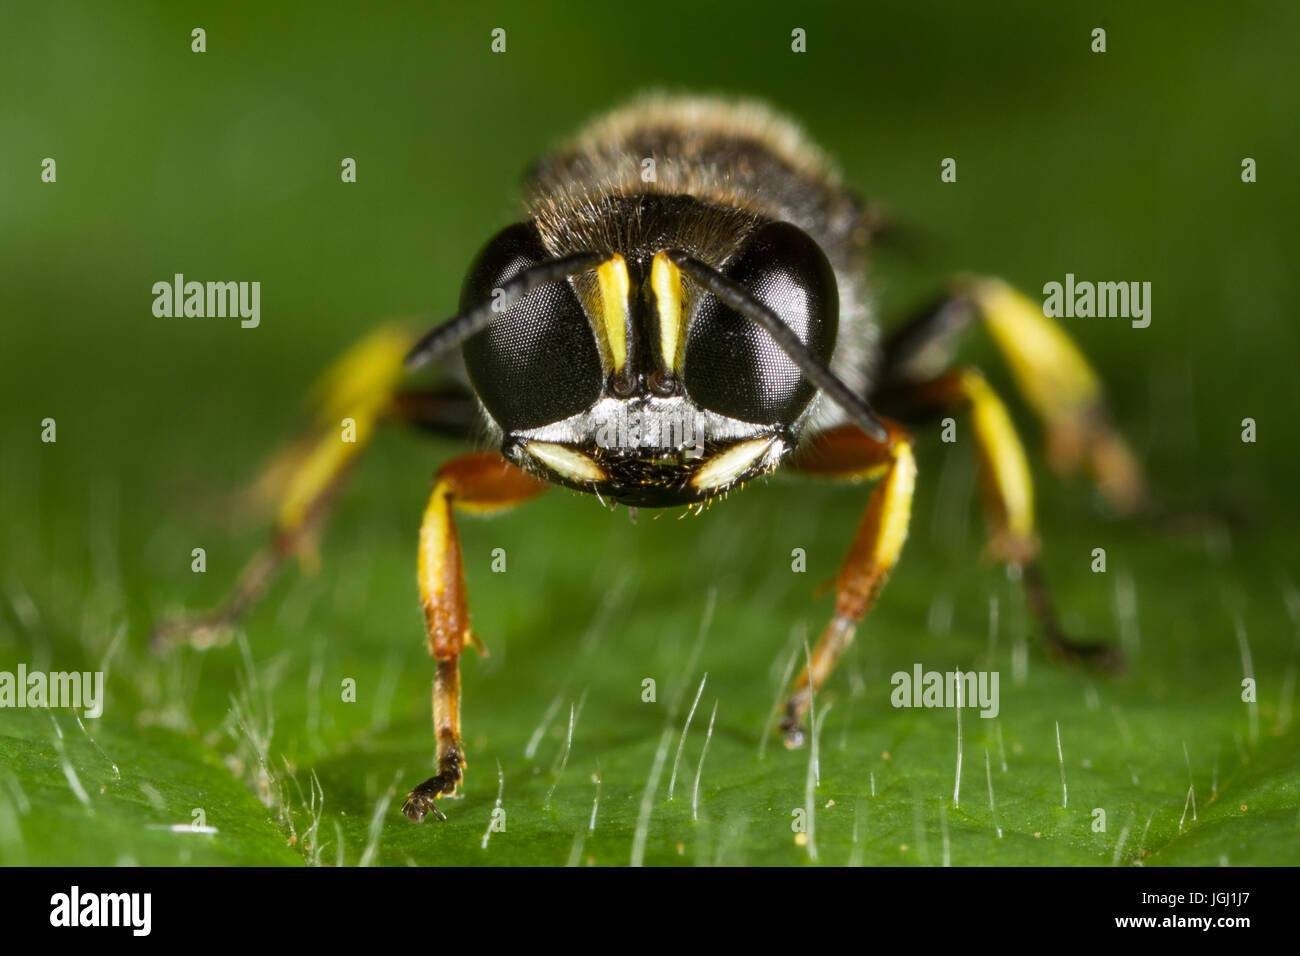 male Ectemnius continuus (a fly-hunting wasp) - Stock Image